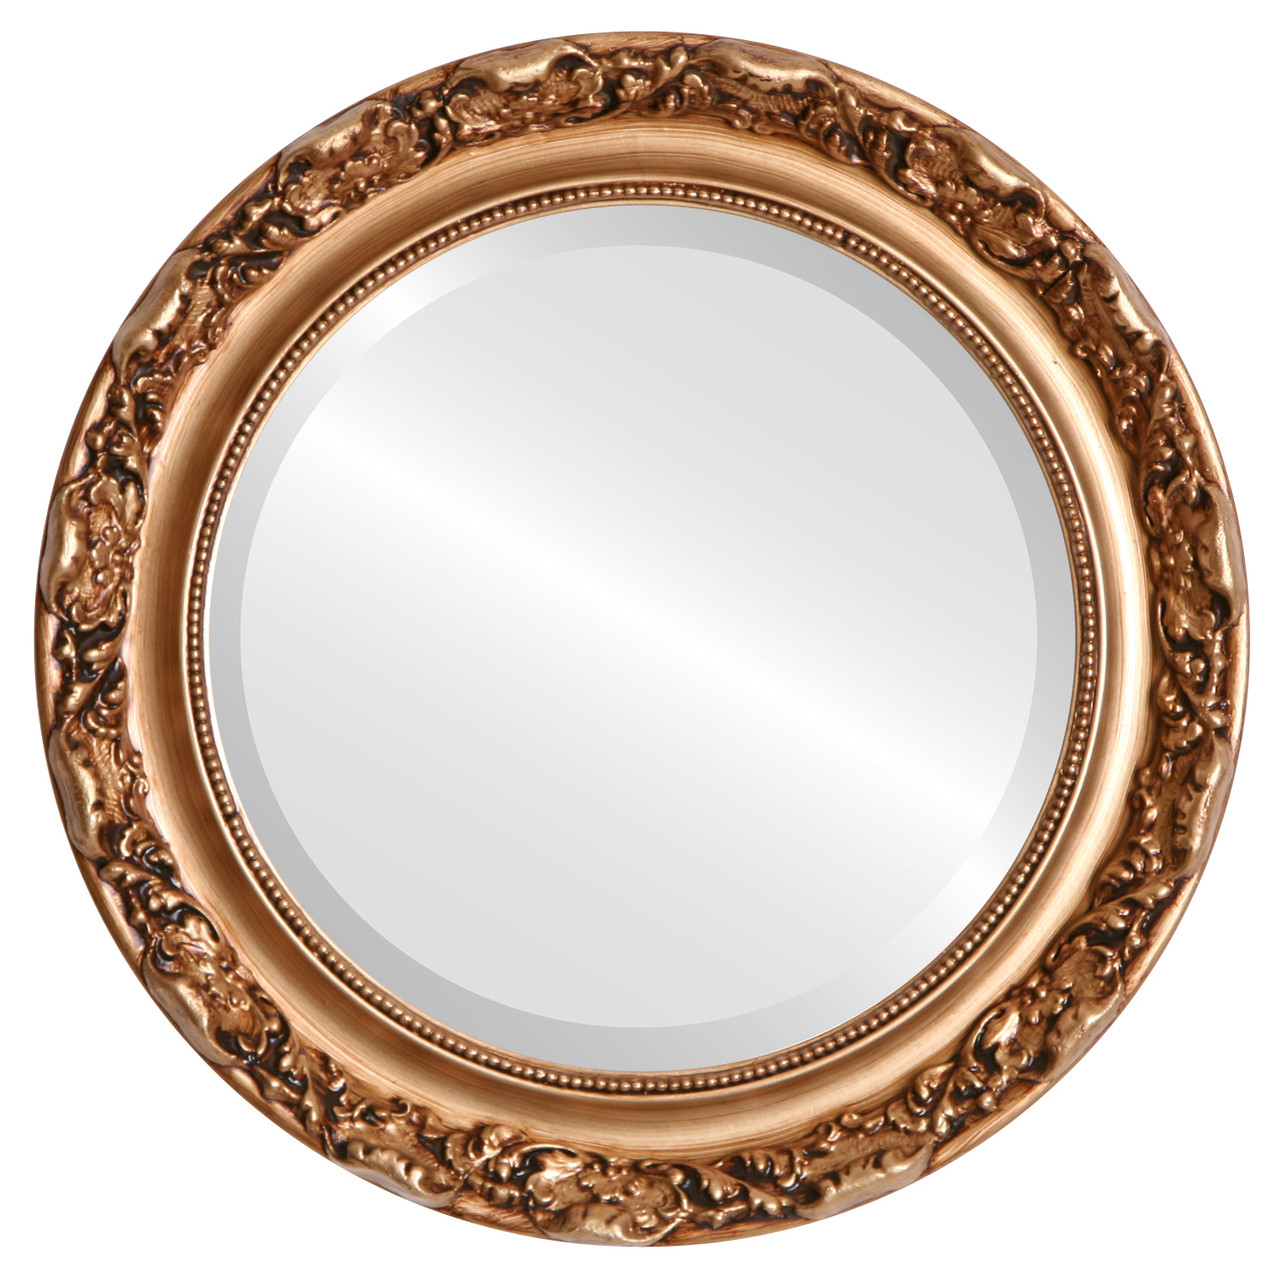 Vintage Gold Round Mirrors from $146 | Free Shipping